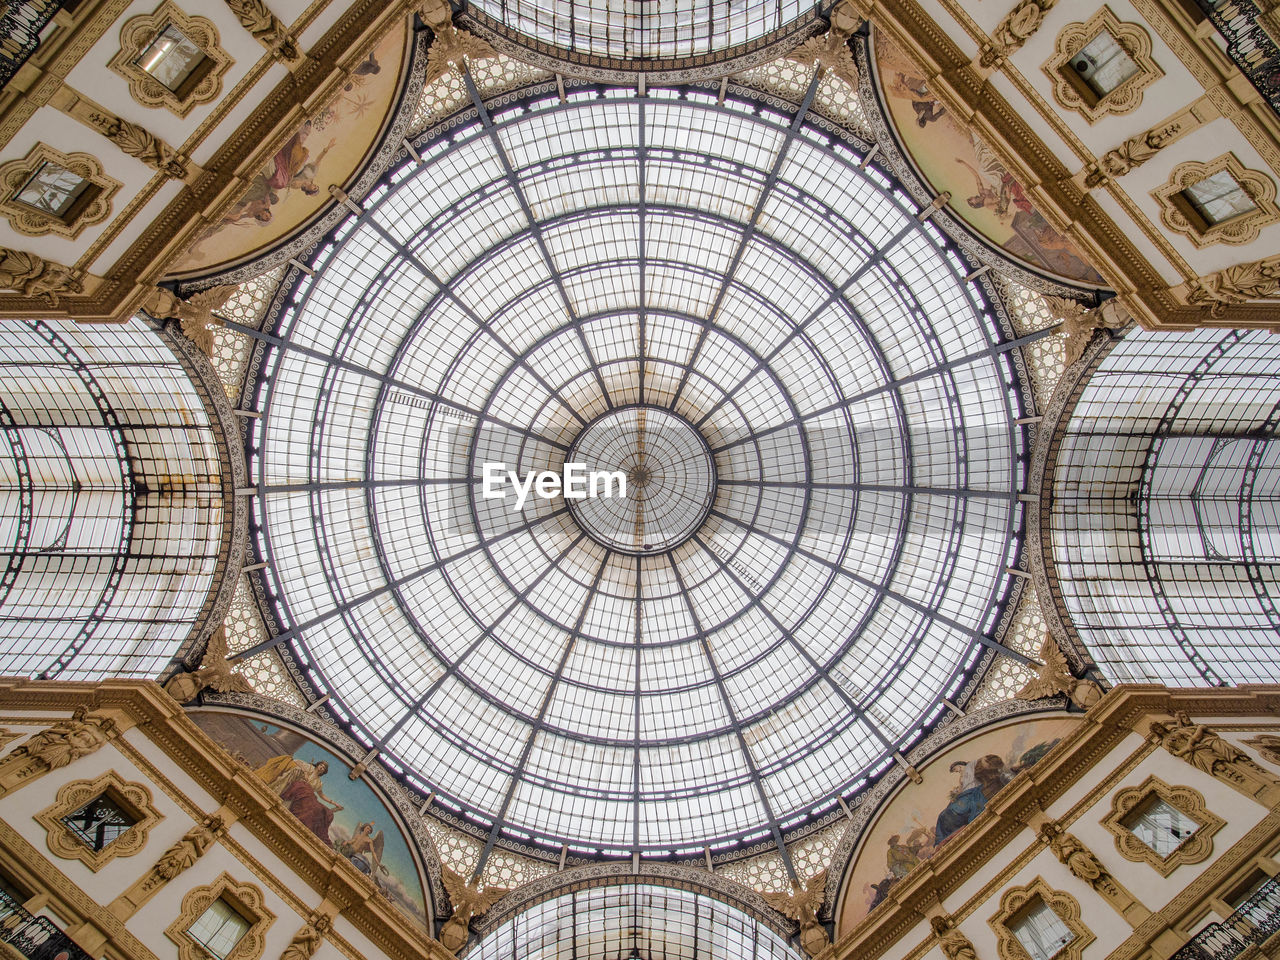 architecture, ceiling, dome, built structure, indoors, pattern, low angle view, cupola, no people, the past, art and craft, architectural feature, history, directly below, geometric shape, ornate, arch, architecture and art, travel destinations, mural, skylight, fresco